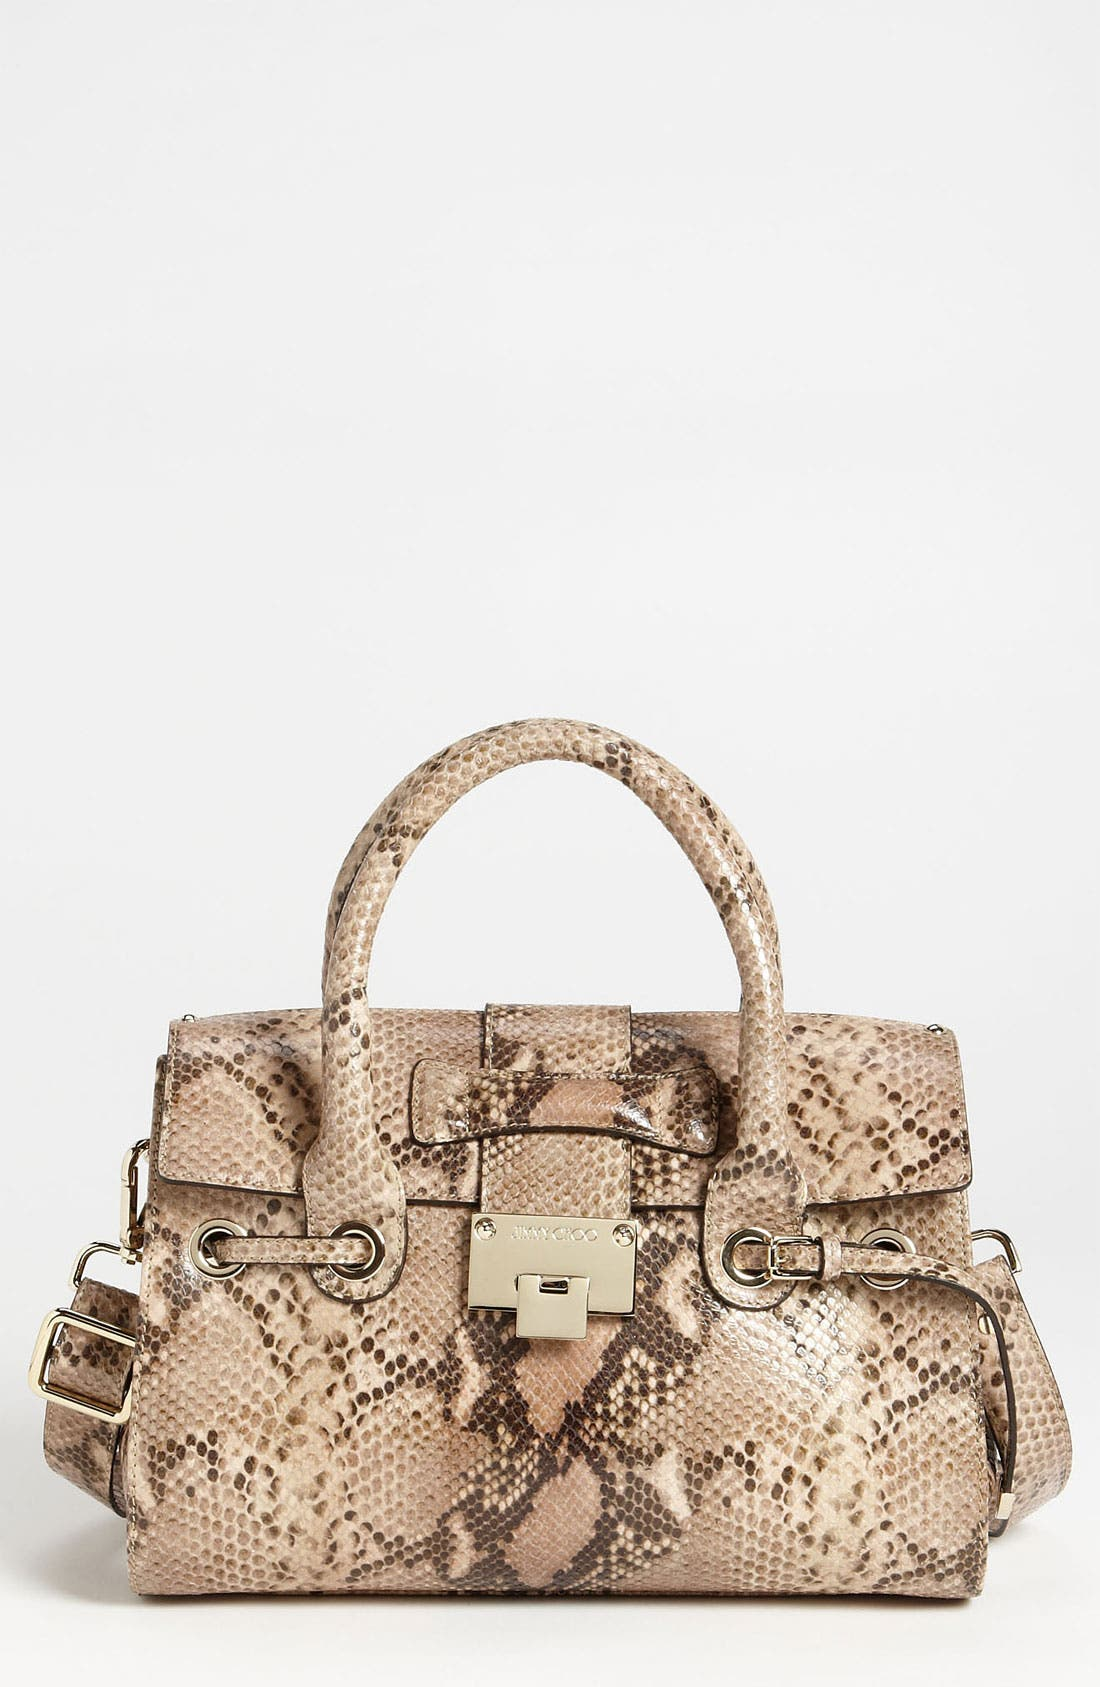 Main Image - Jimmy Choo 'Rosalie' Snake Embossed Leather Satchel